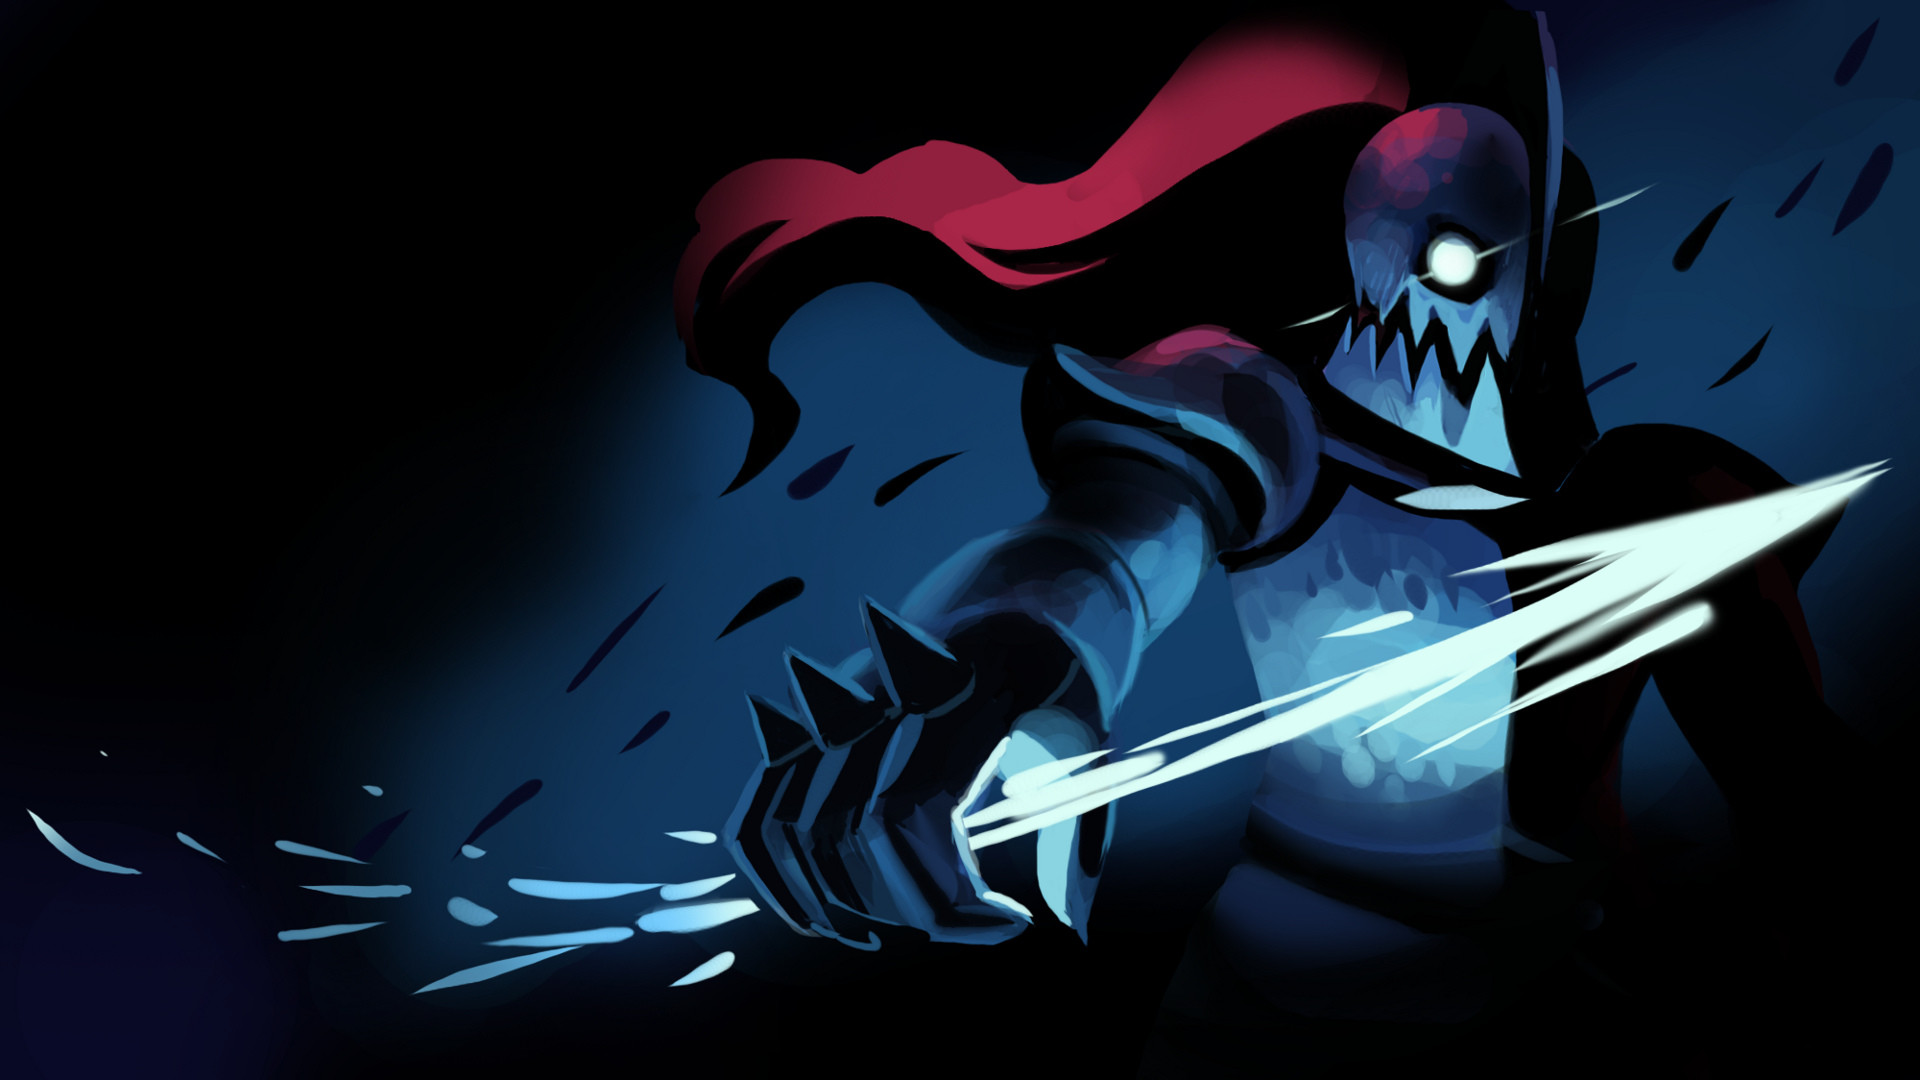 Res: 1920x1080, UNDERTALE-The Game images Undyne Wallpaper HD wallpaper and background  photos